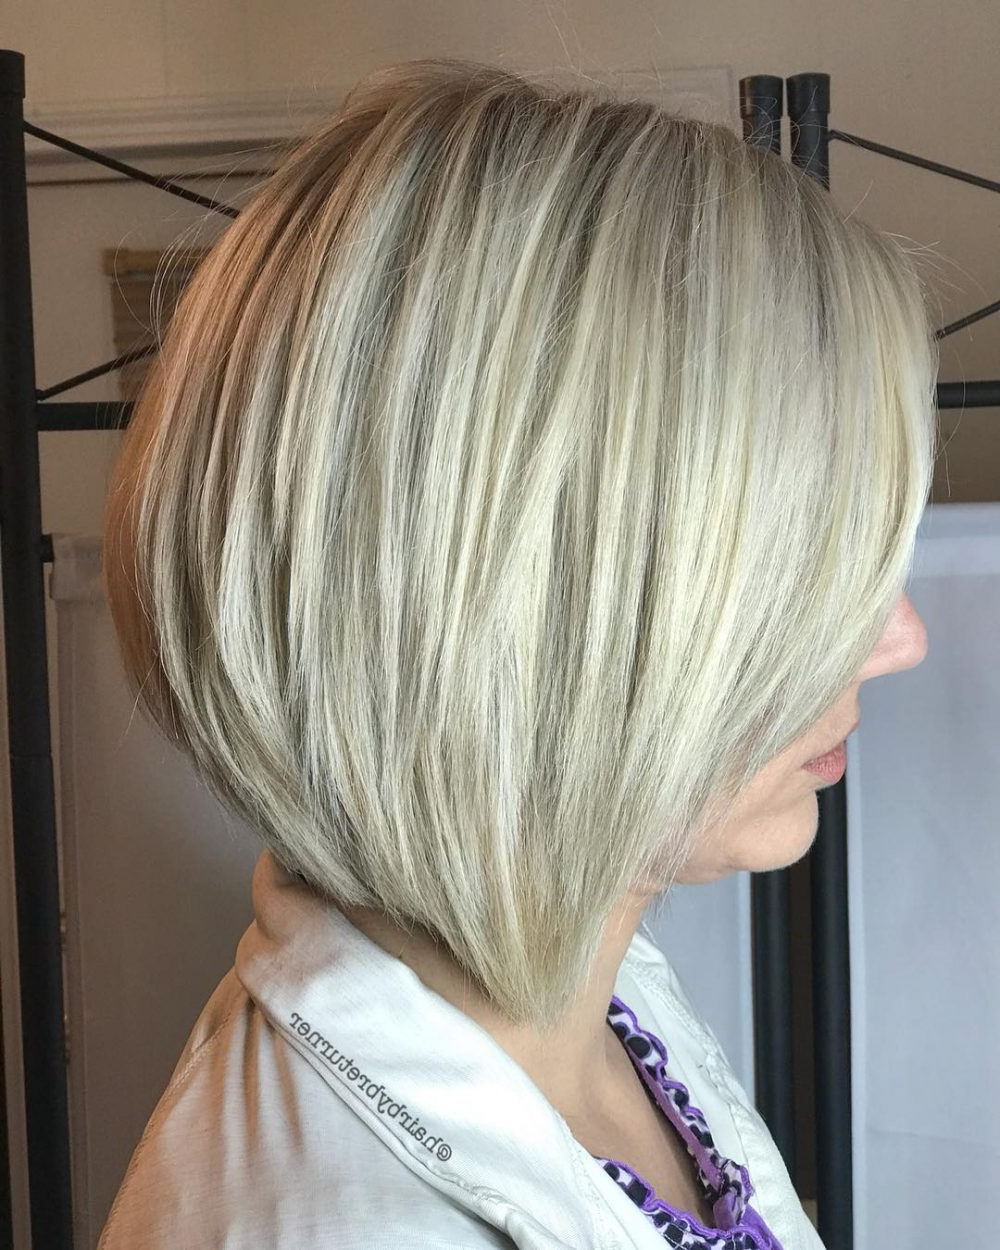 42 Sexiest Short Hairstyles For Women Over 40 In 2019 With Best And Newest Medium Haircuts For Women Over 40 (Gallery 4 of 20)